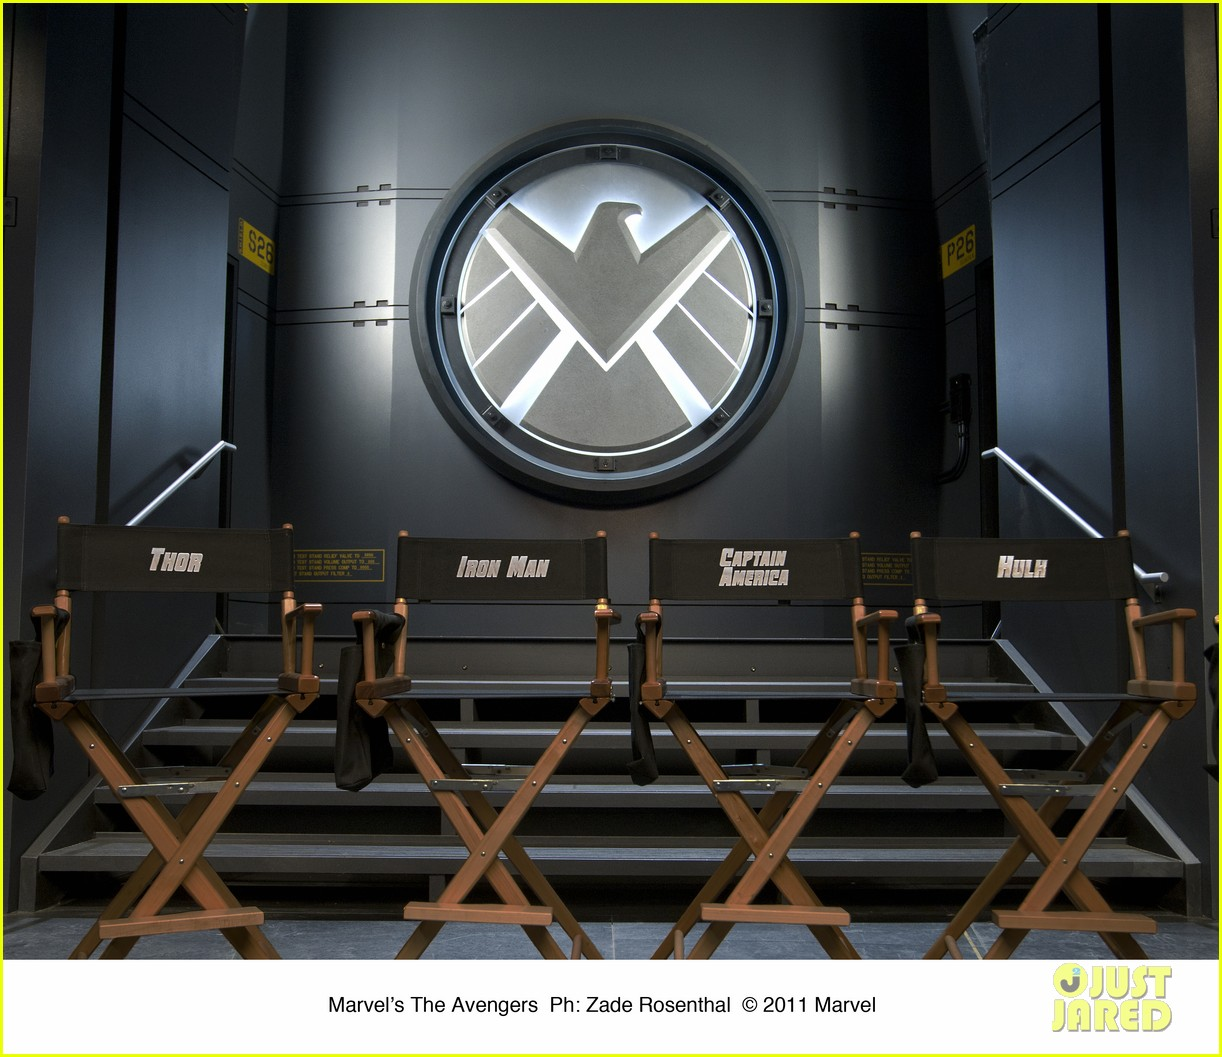 The Avengers Movie First Look & Photos